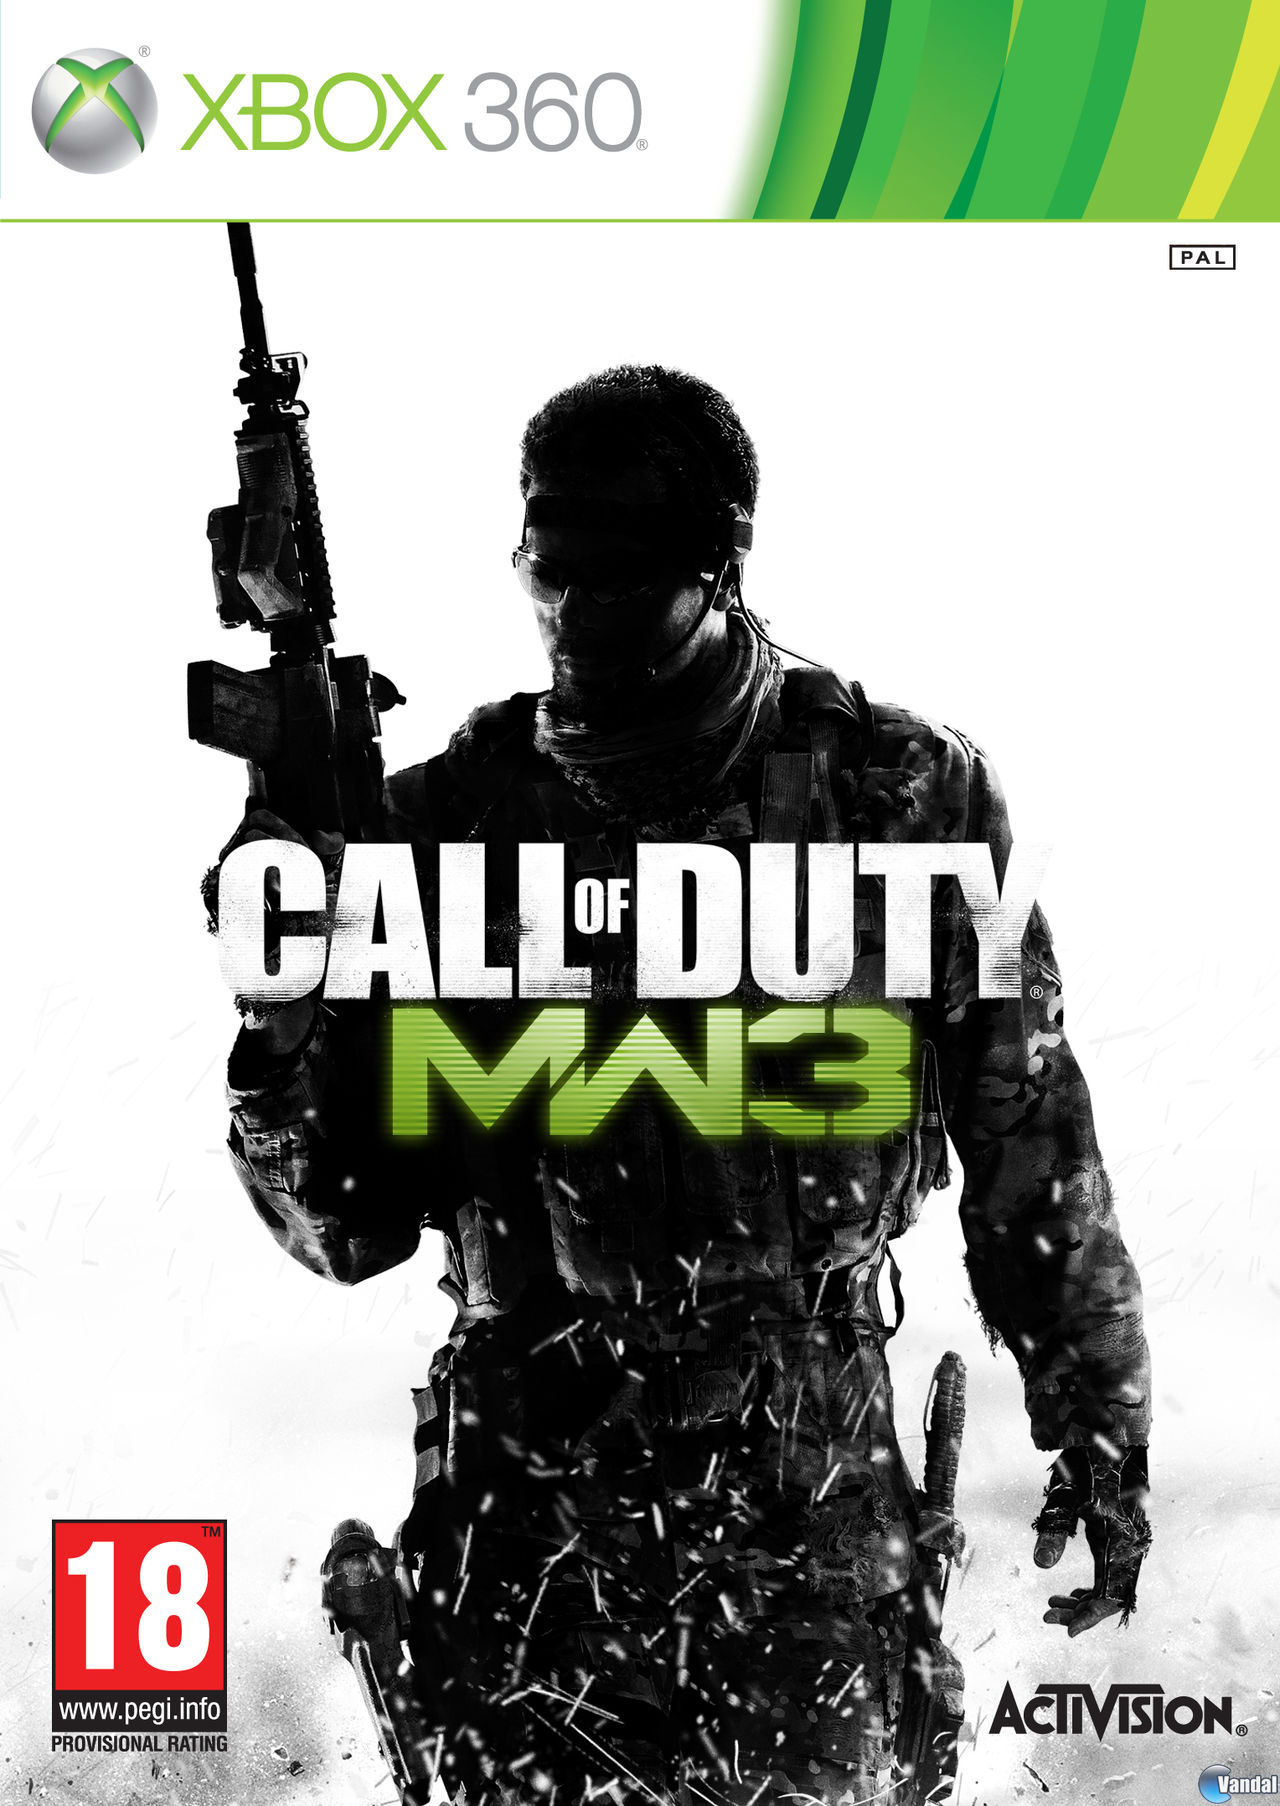 Imagen 7 de Call of Duty: Modern Warfare 3 para Xbox 360